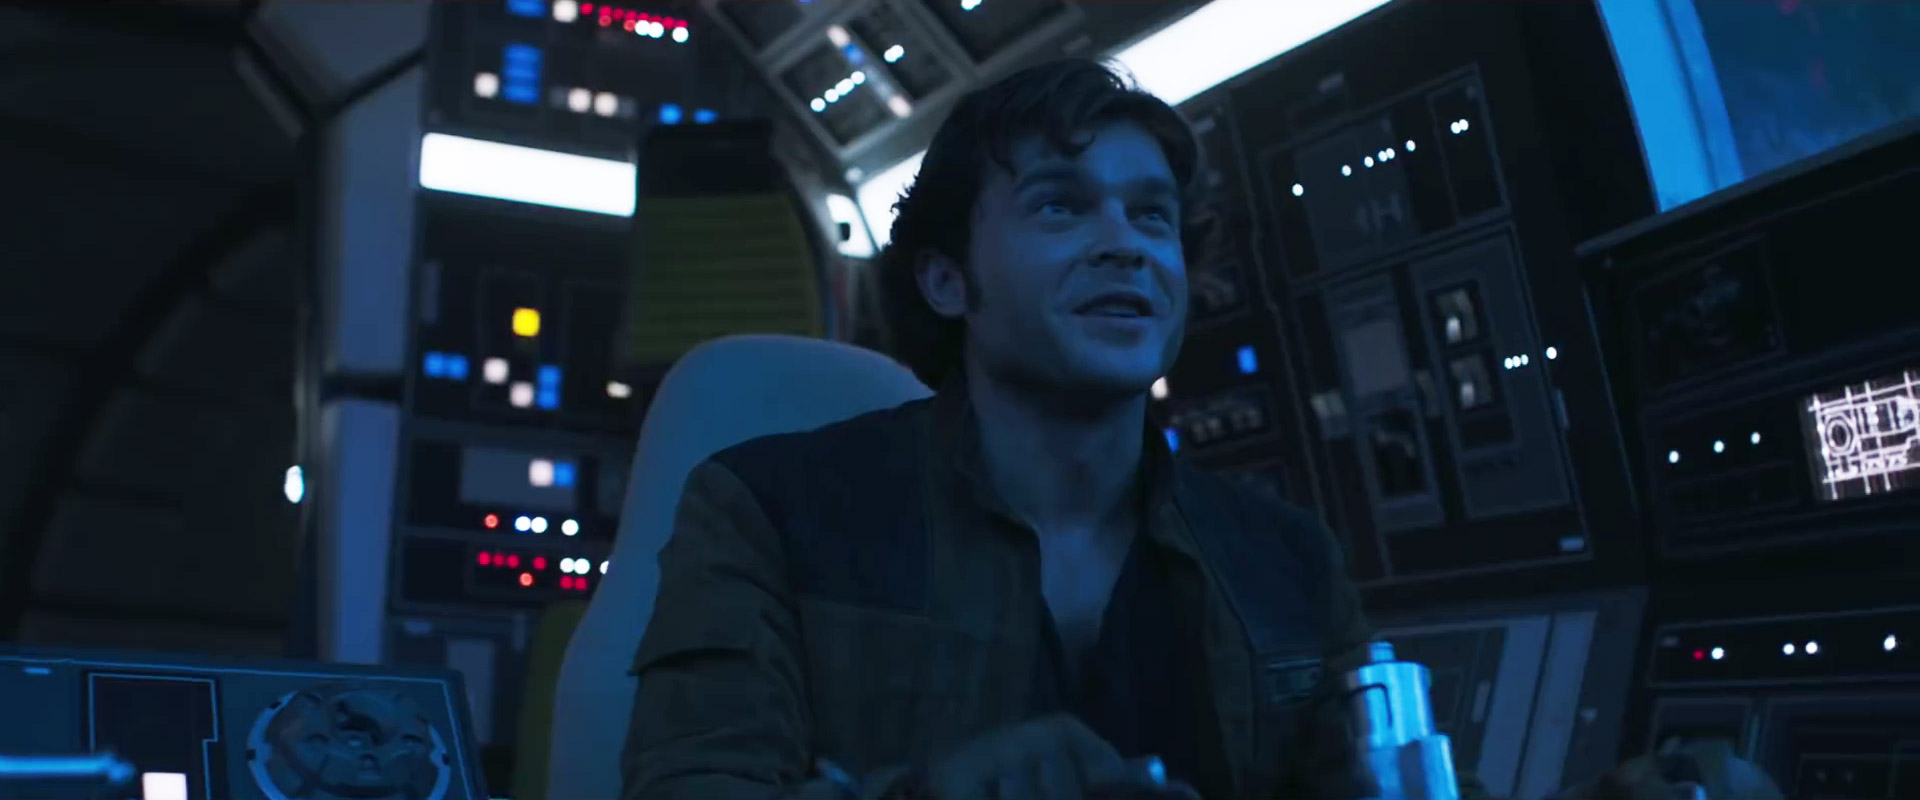 First Full Trailer for Solo: A Star Wars Story!